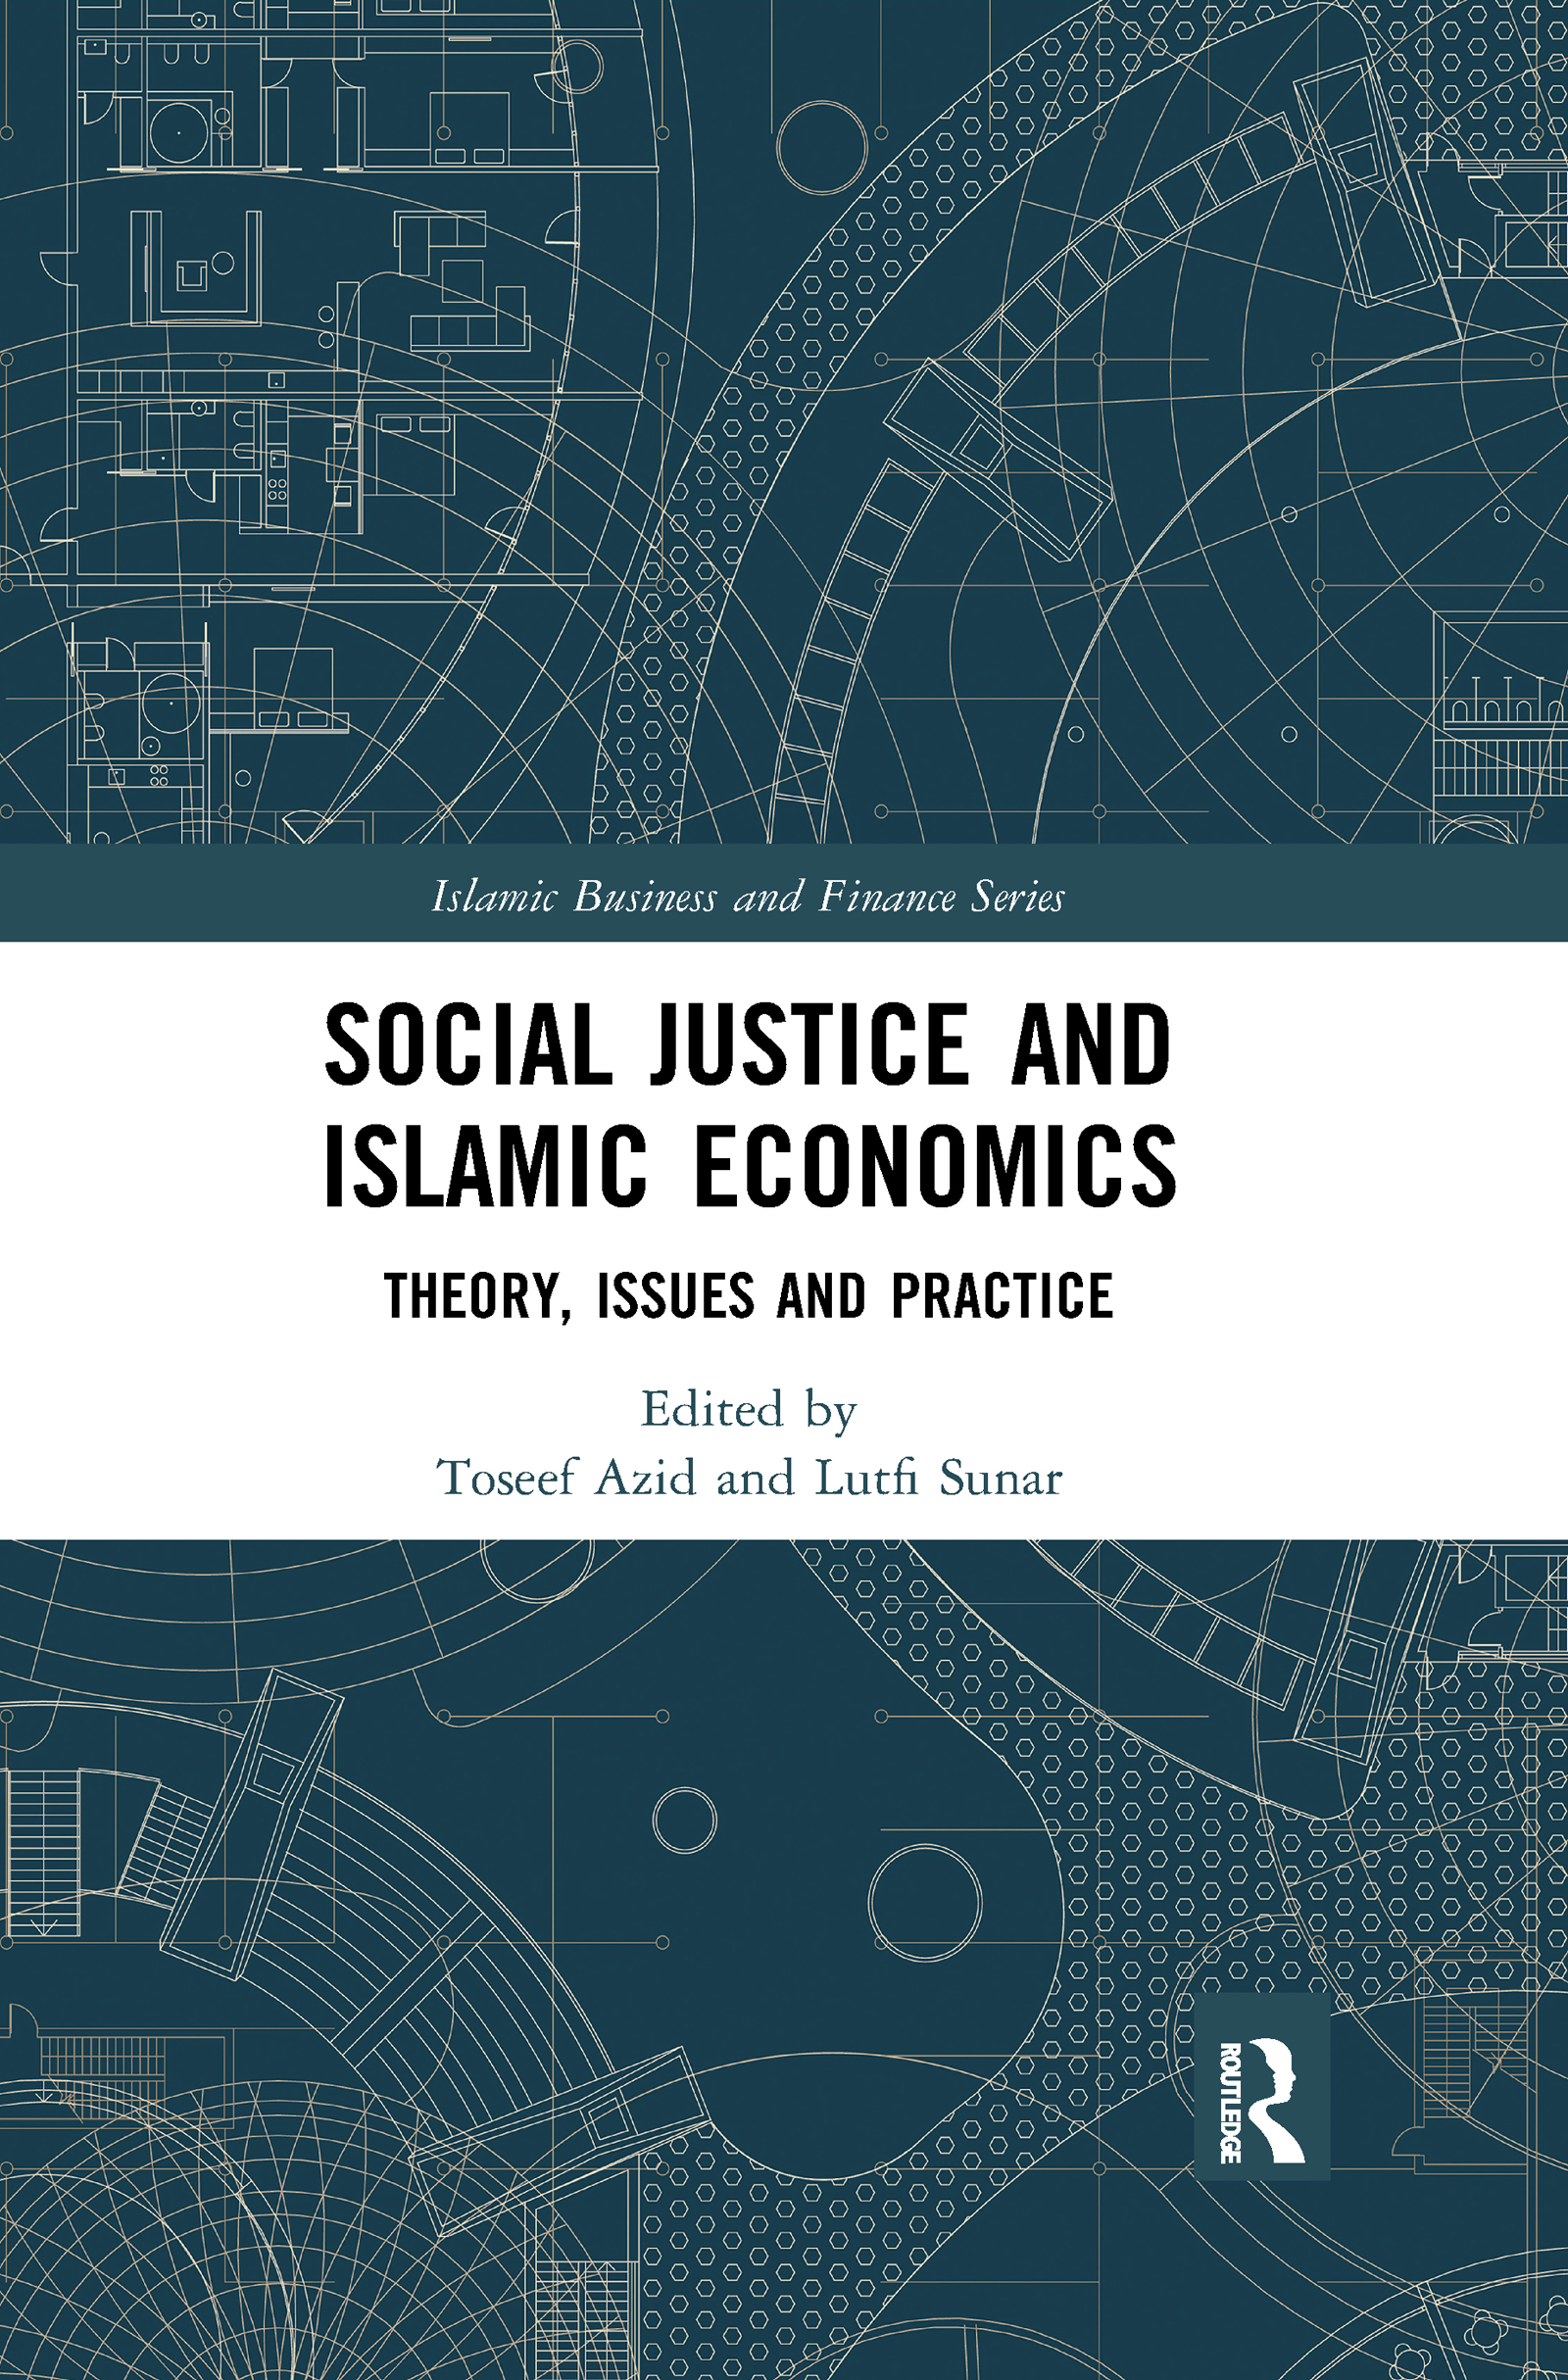 Social Justice and Islamic Economics